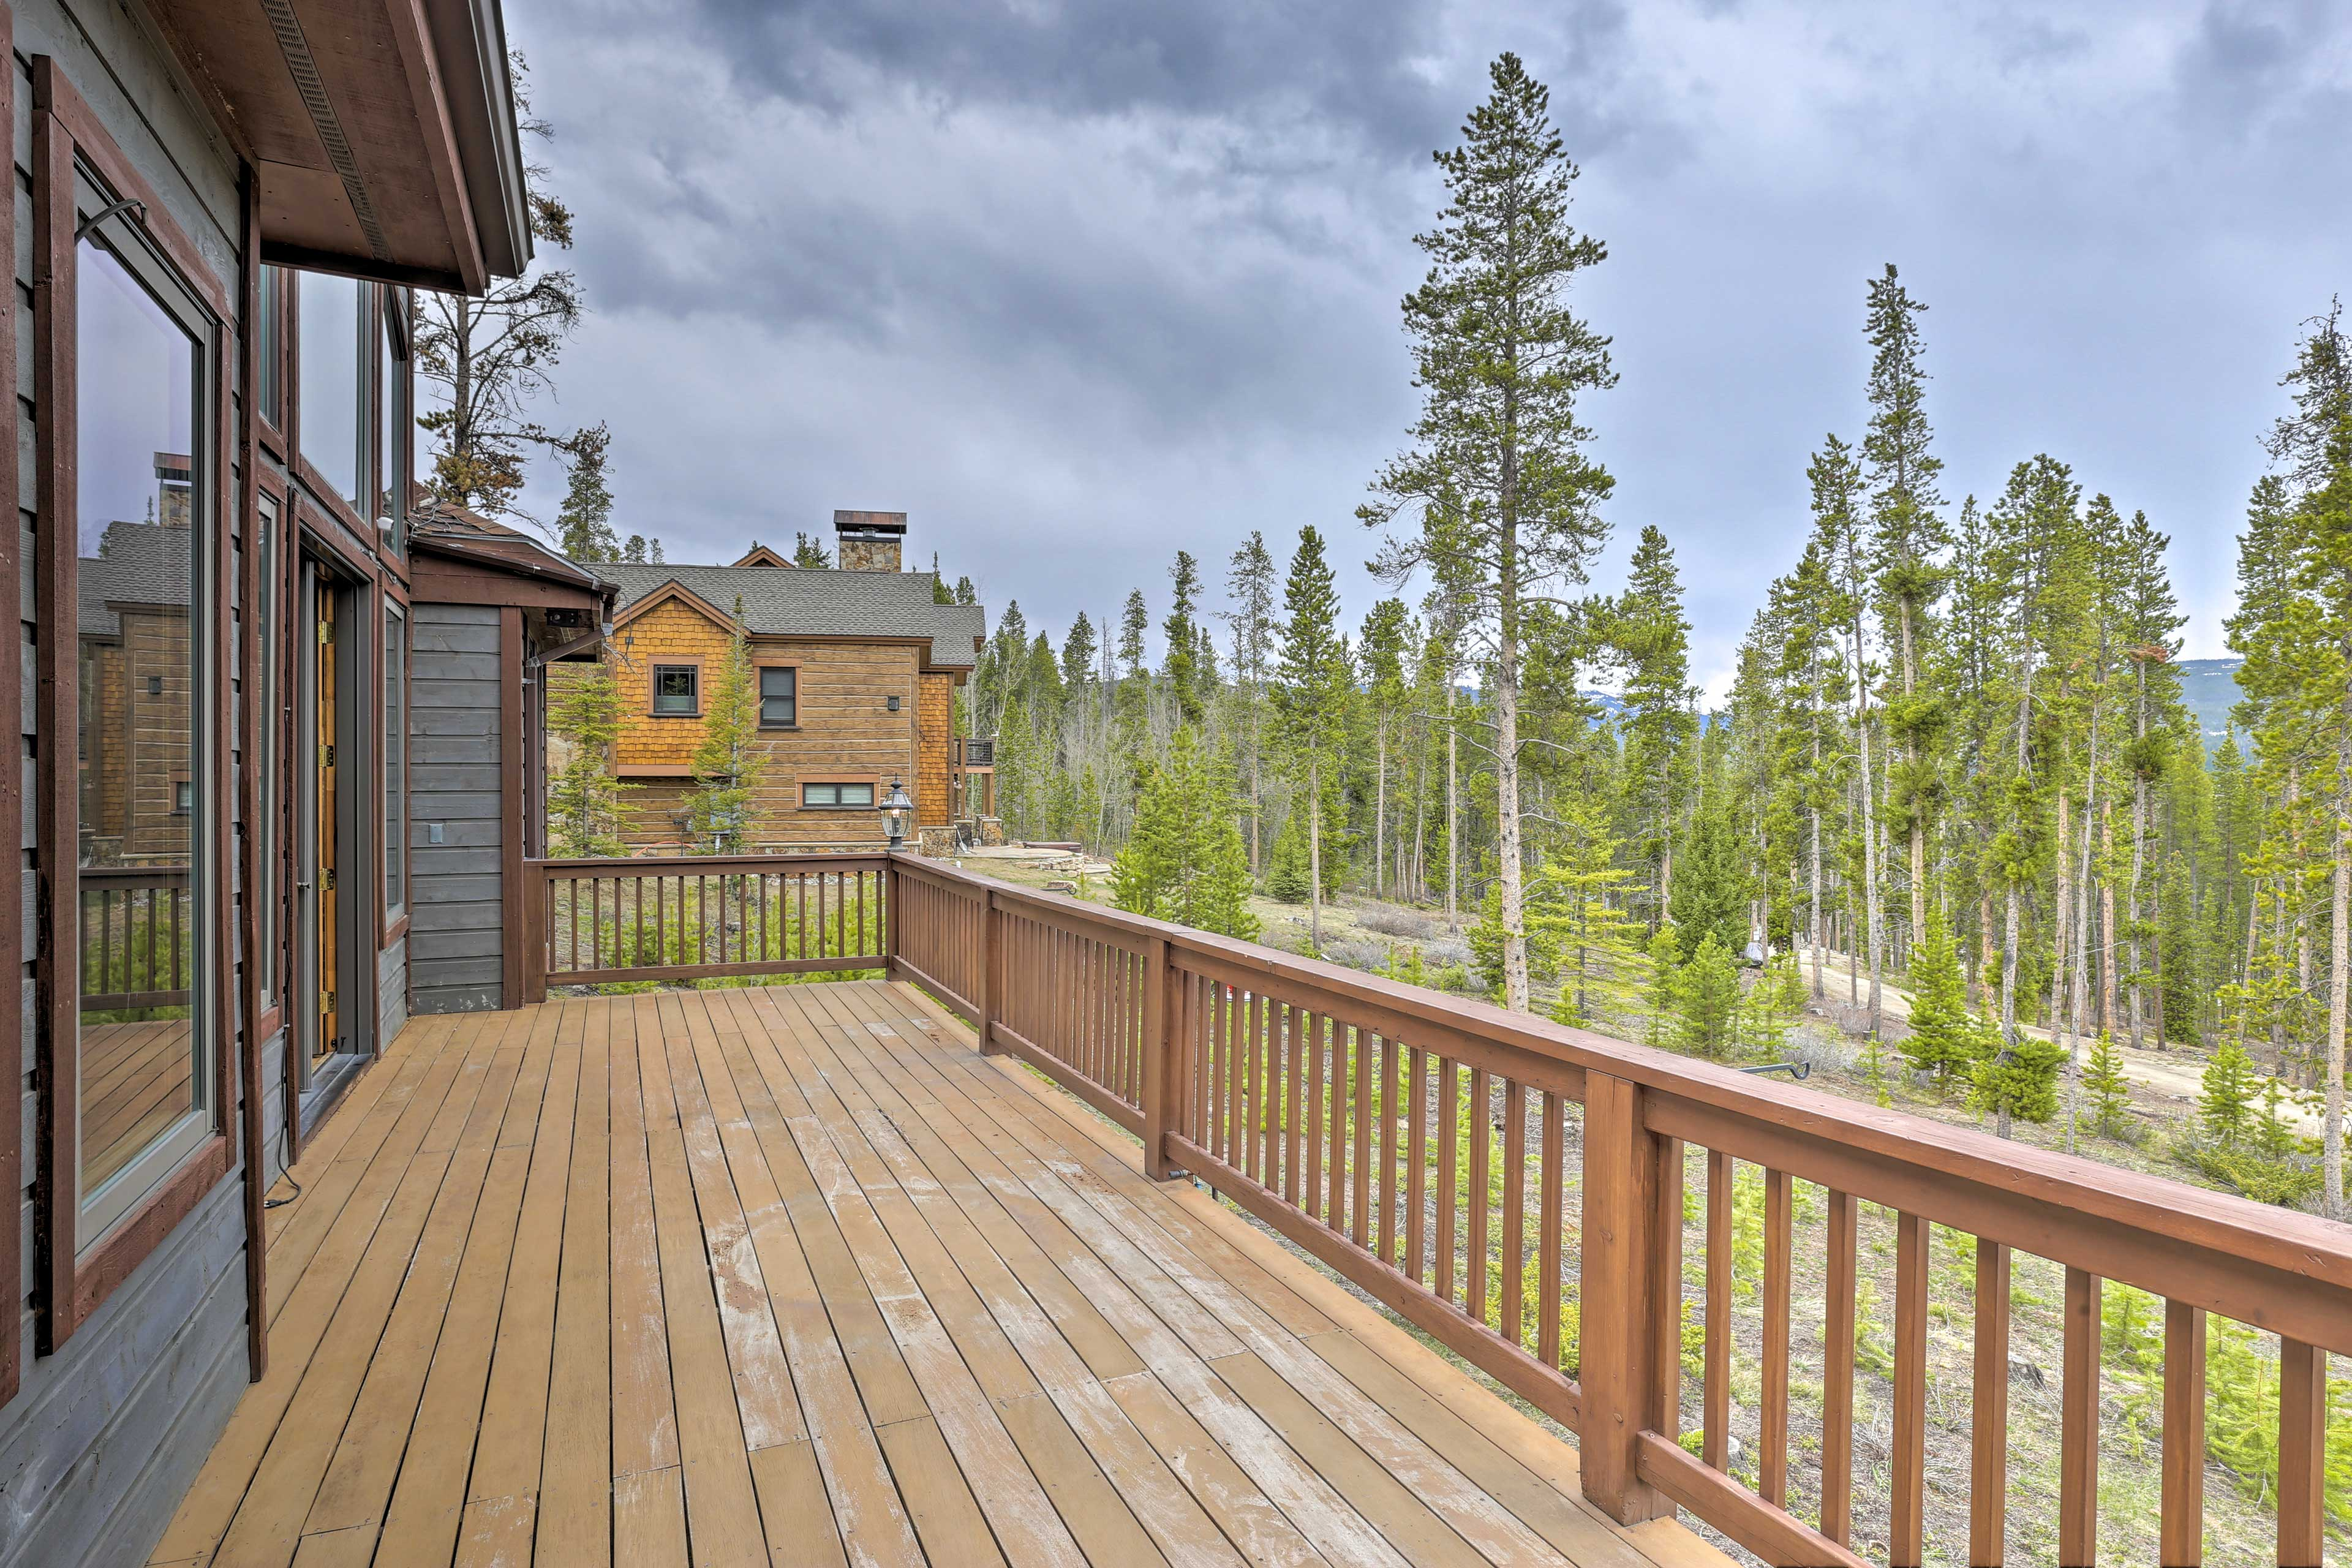 View from the house include towering trees & mountain silhouettes.